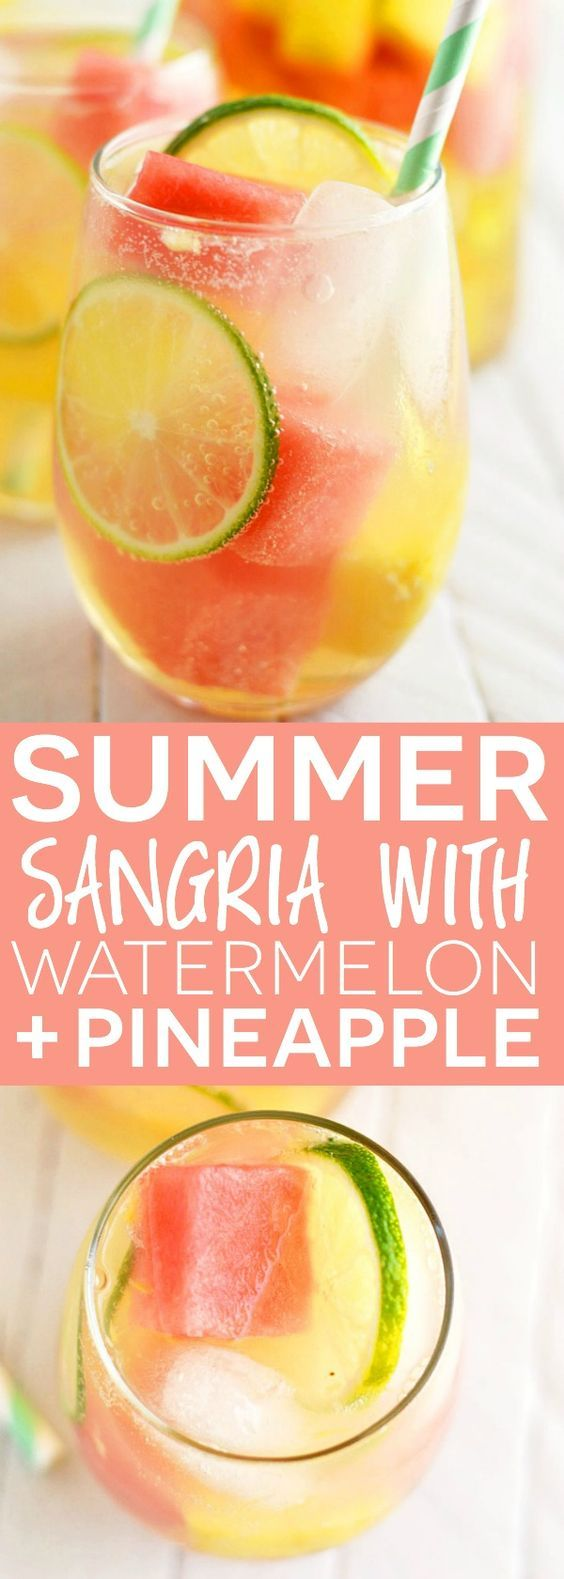 Summer Sangria with Watermelon and Pineapple from What The Fork Food Blog. This is my new favorite cocktail. | whattheforkfoodblog.com | Sponsored by Del Monte Fresh